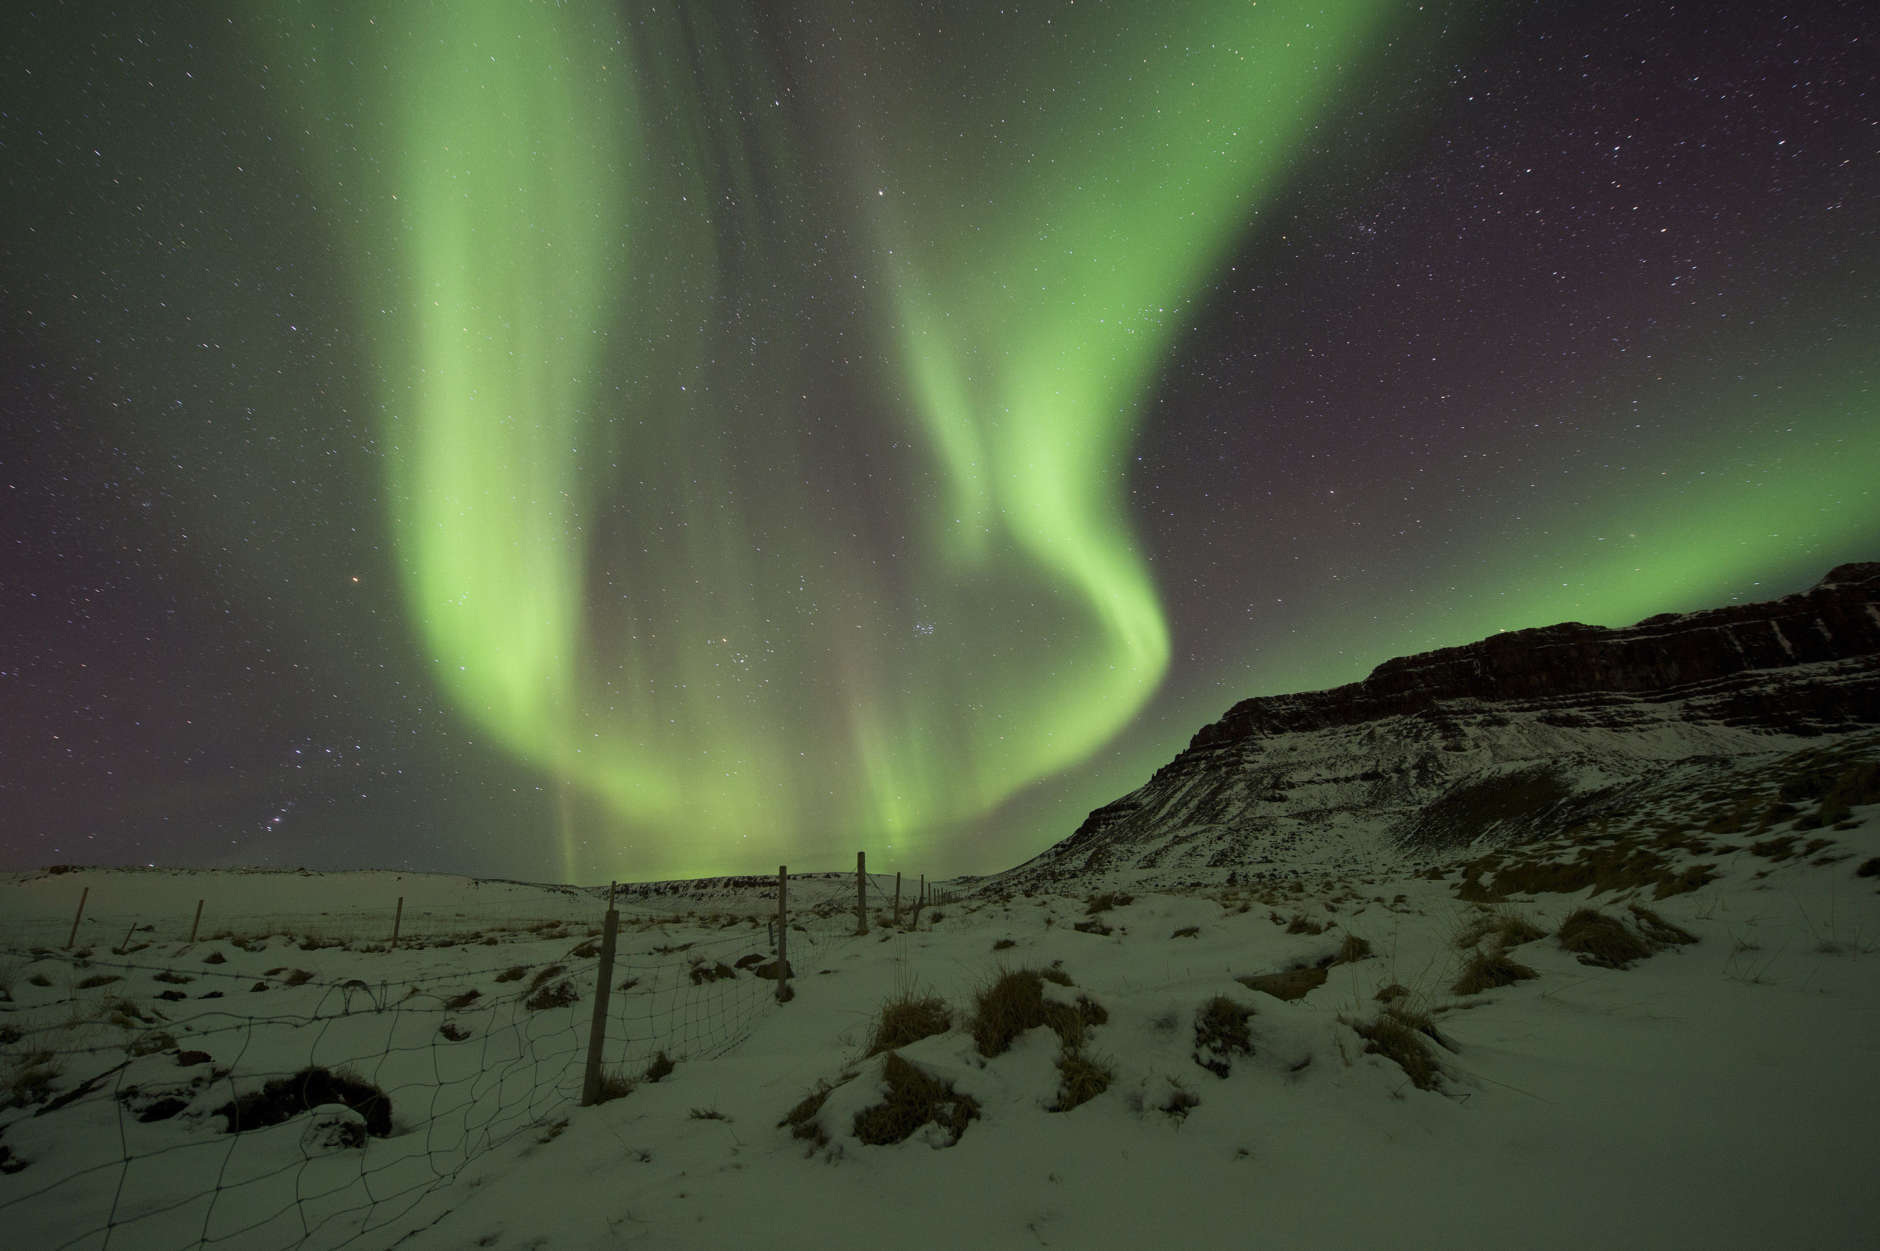 File-In this March 1, 2017, file photo the Northern Lights, or aurora borealis, appear in the sky over Bifrost, Western Iceland. The Northern Lights are created as a result of collisions between gaseous particles in the Earth's atmosphere and charged particles released by the sun, according to the Northern Lights Space and Science Centre in Canada. (AP Photo/Rene Rossignaud, File)